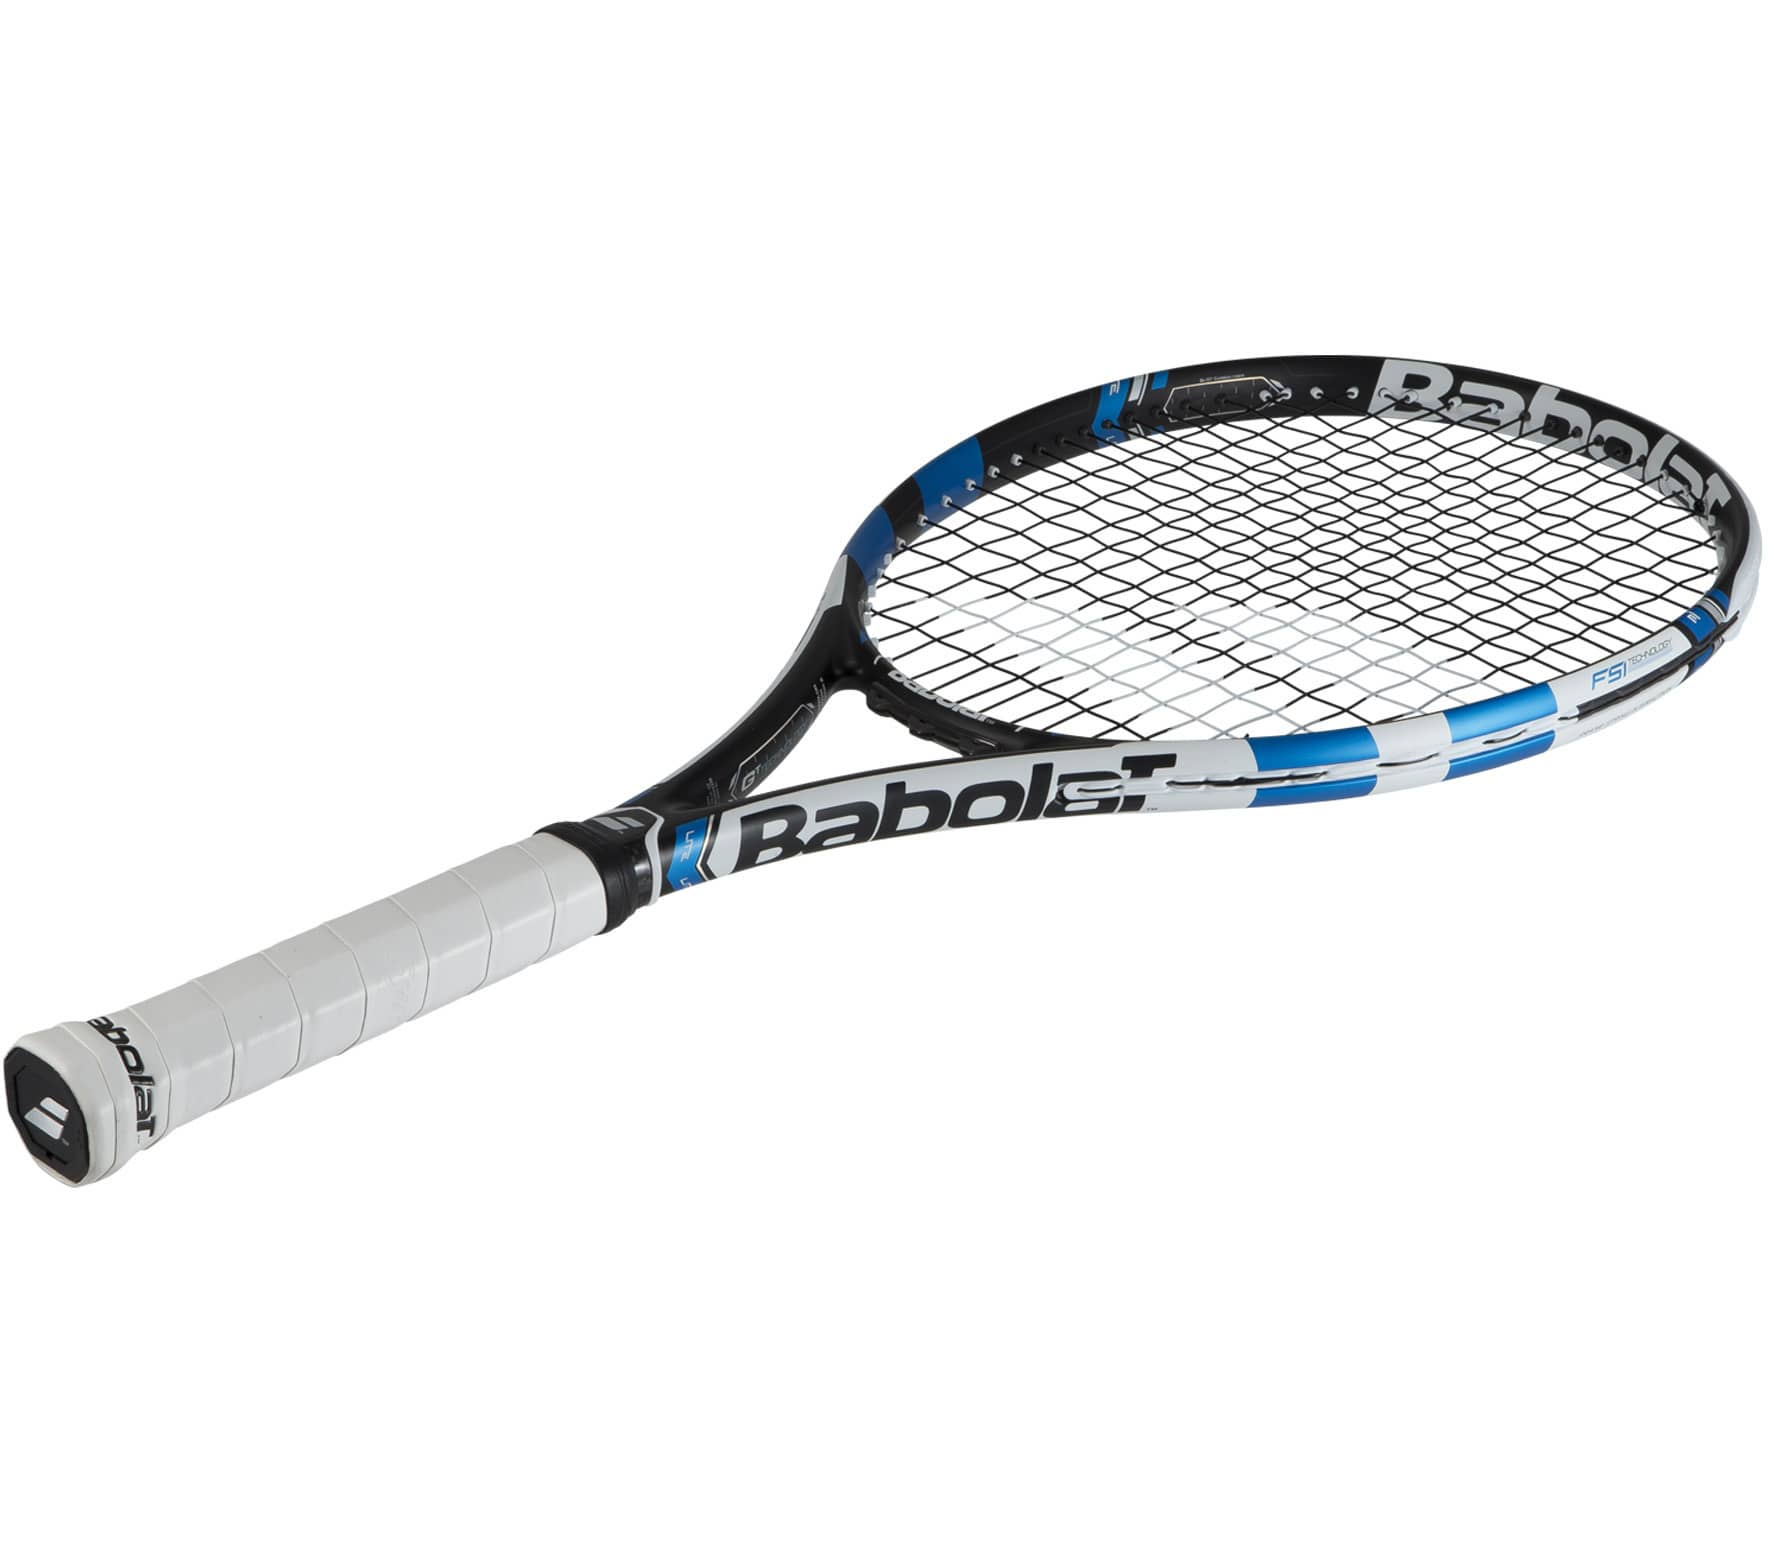 babolat pure drive lite raquette de tennis non cord e noir bleu acheter en ligne keller sports. Black Bedroom Furniture Sets. Home Design Ideas